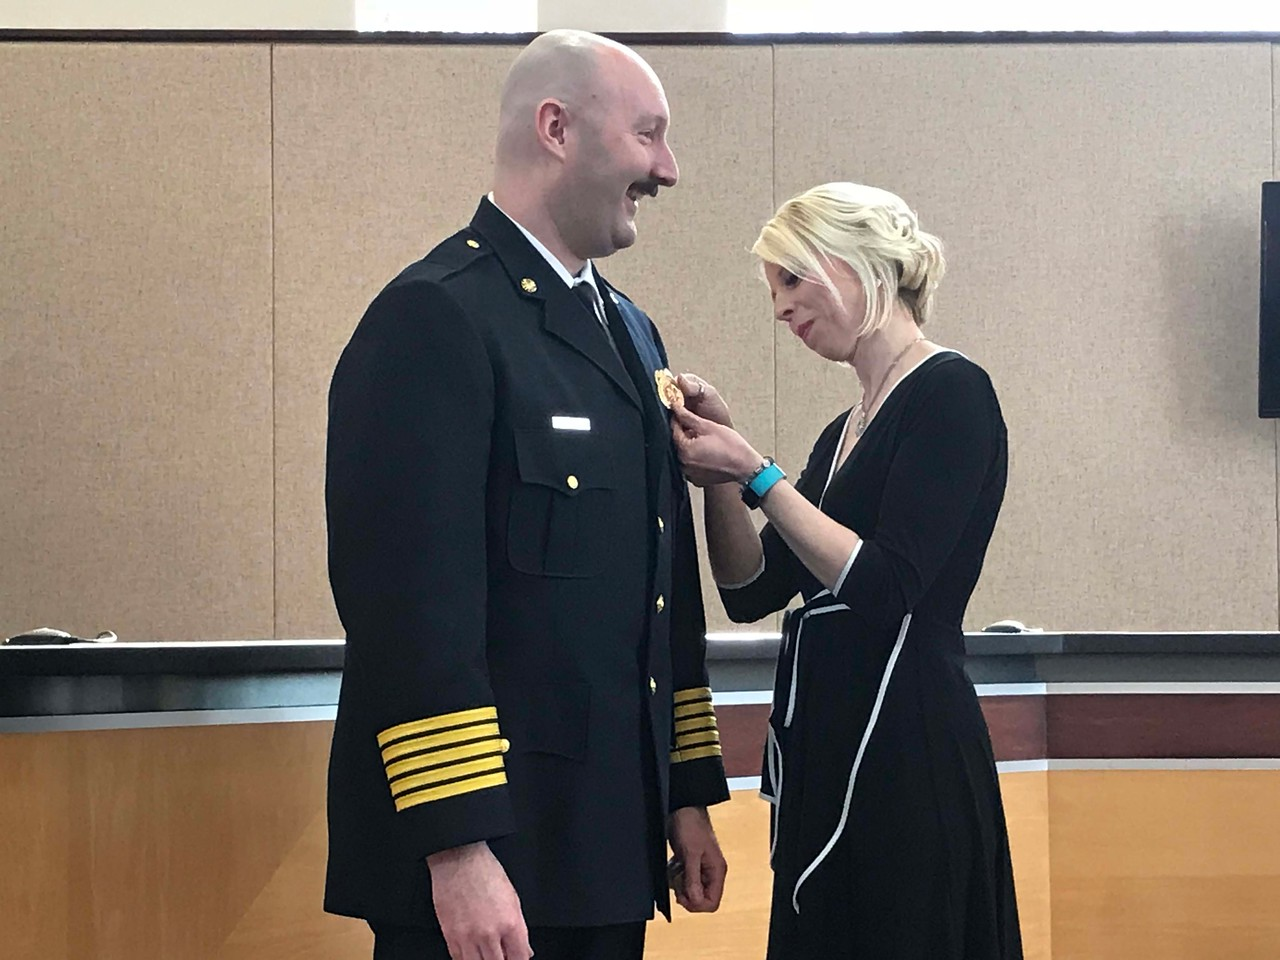 NATHAN HAVENNER/ GAZETTE  Andrea Lindner performs the pinning ceremony for her husband Robert following his swearing in as fire chief by Mayor Robin Laubaugh at city hall, 120 Maple St. Monday morning.